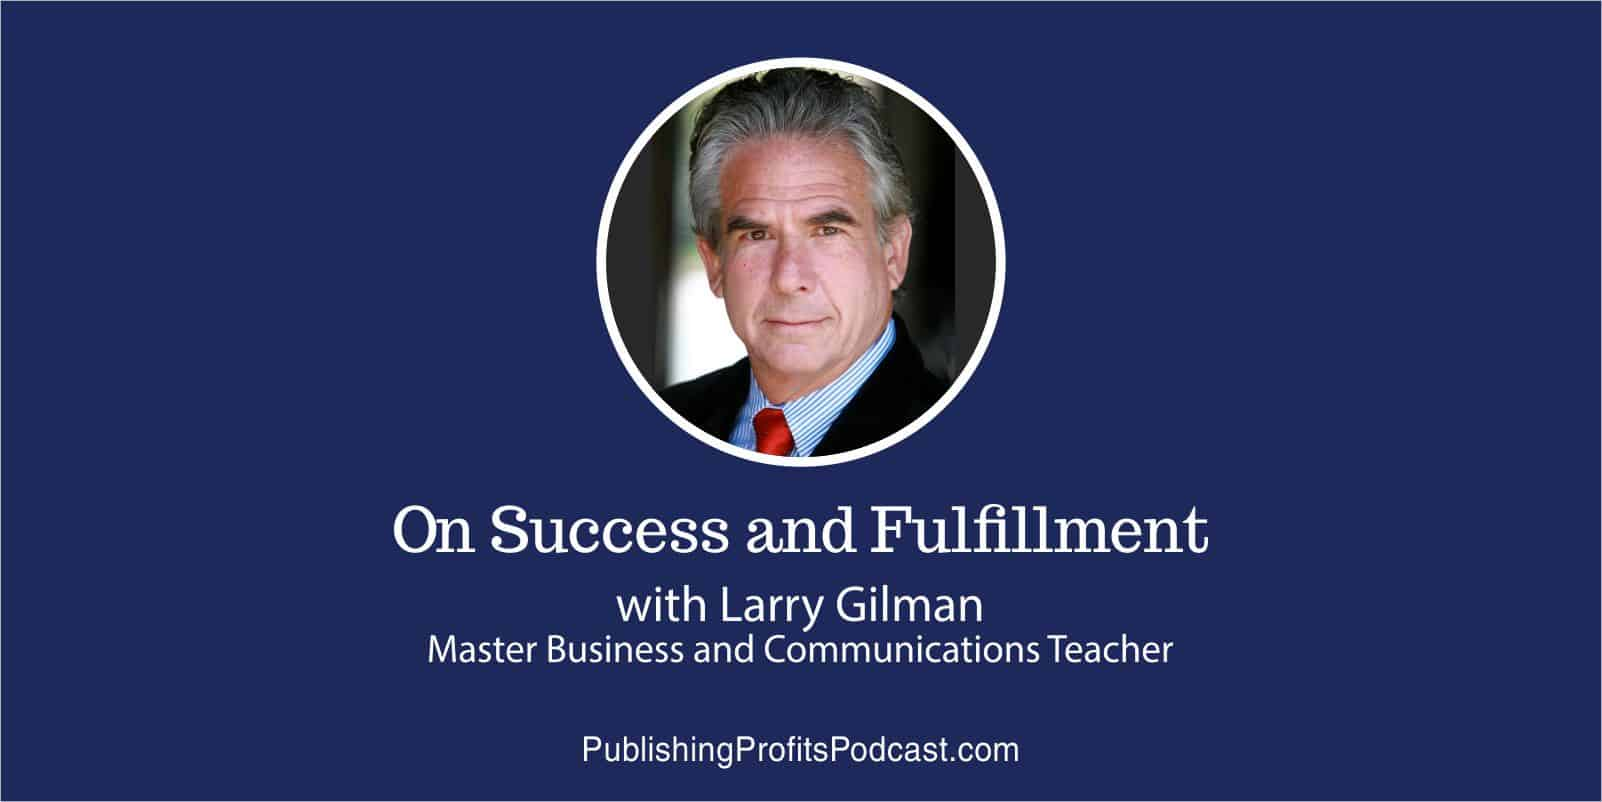 Success and Fulfillment Larry Gilman header